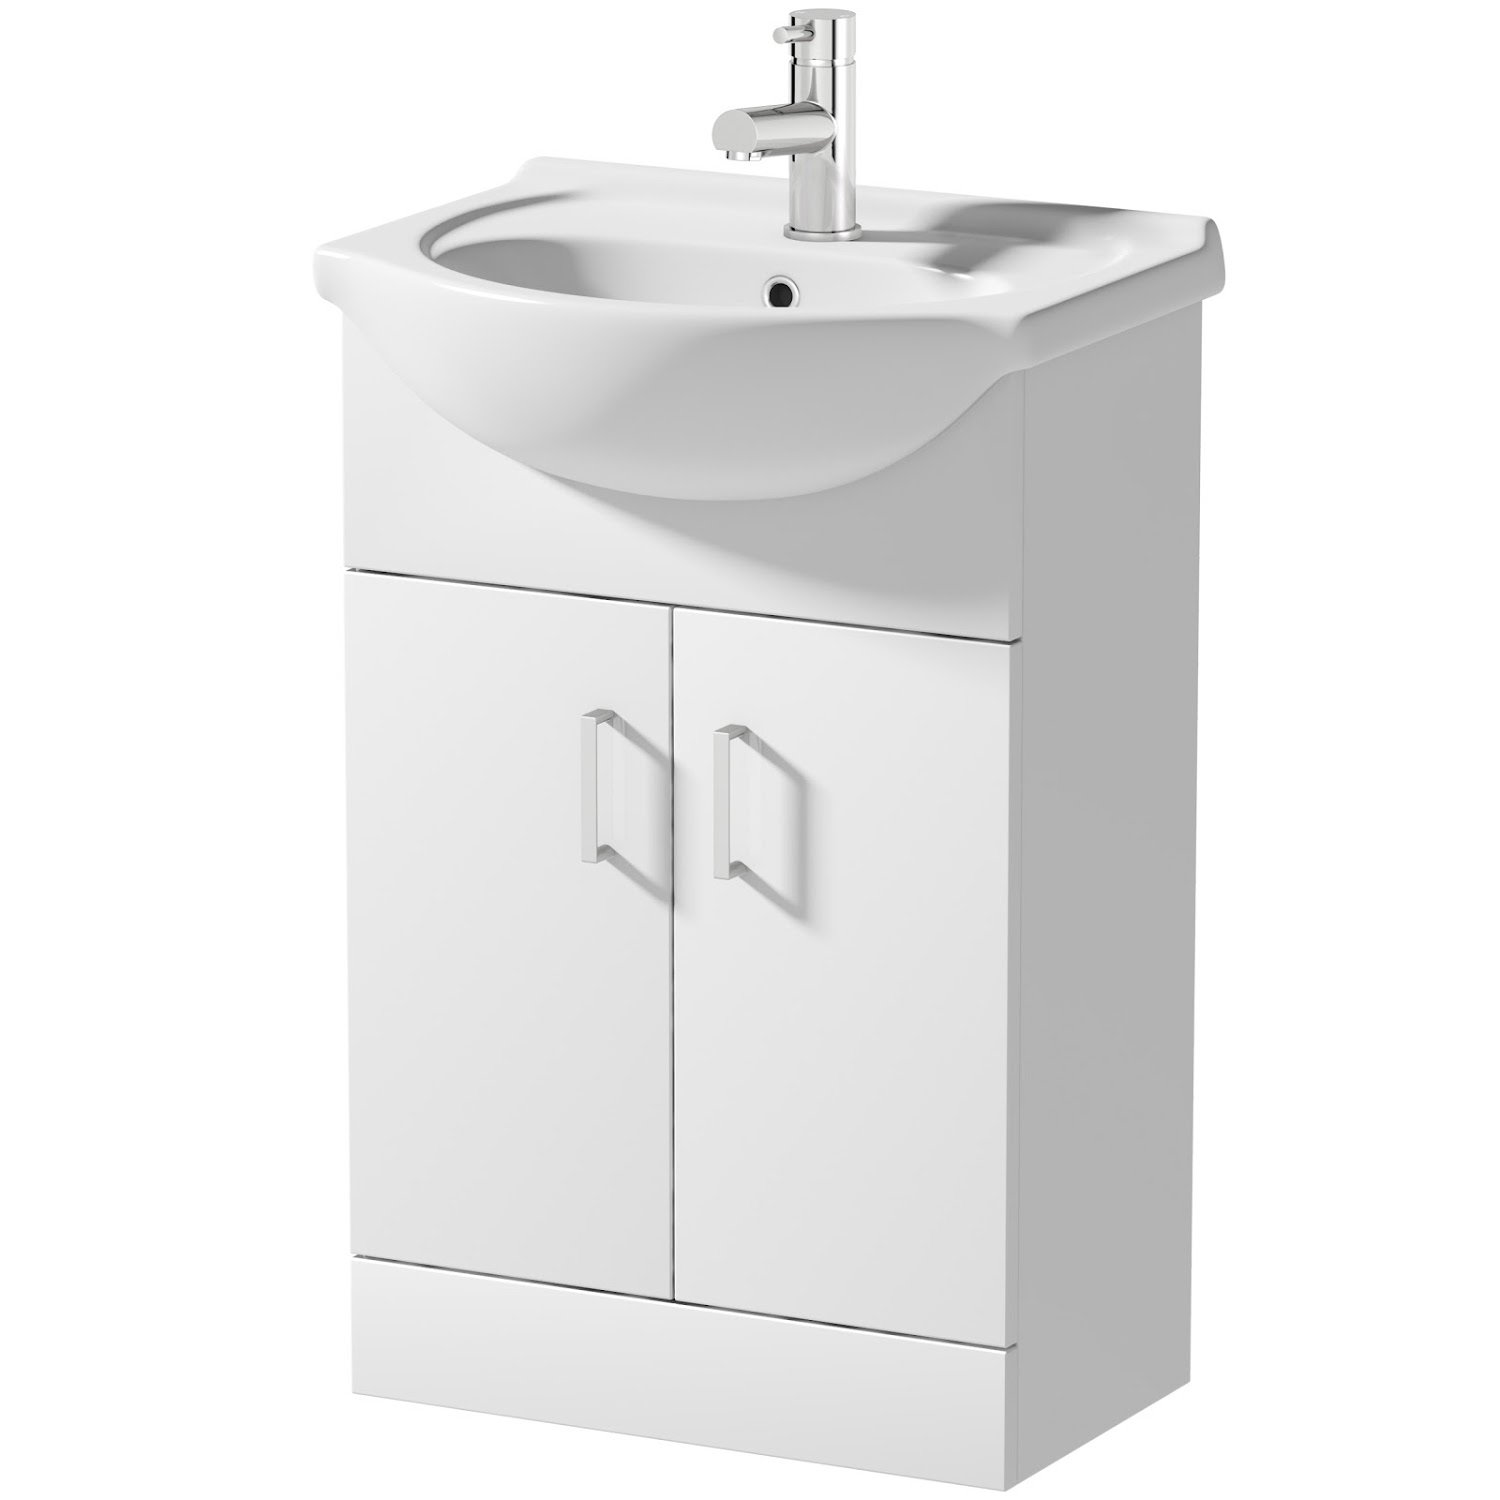 Plumbworld High Gloss White Vanity Unit 550mm Bathroom WC Cloakroom